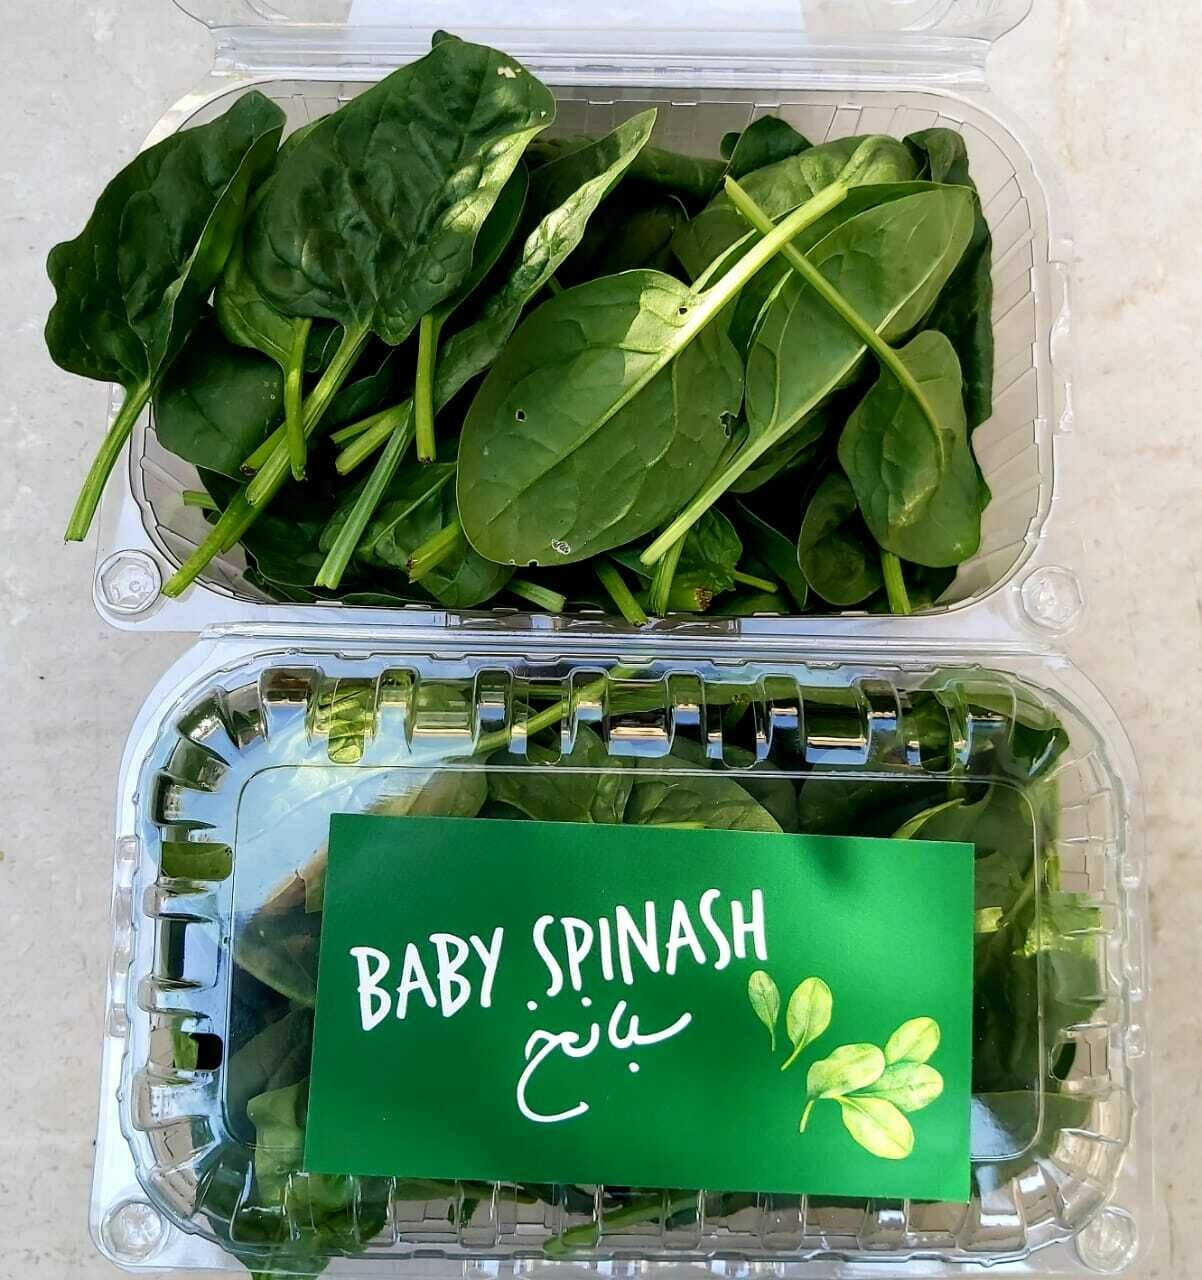 Spinach Baby سبانخ (Box) - Les Reserves du Grenier